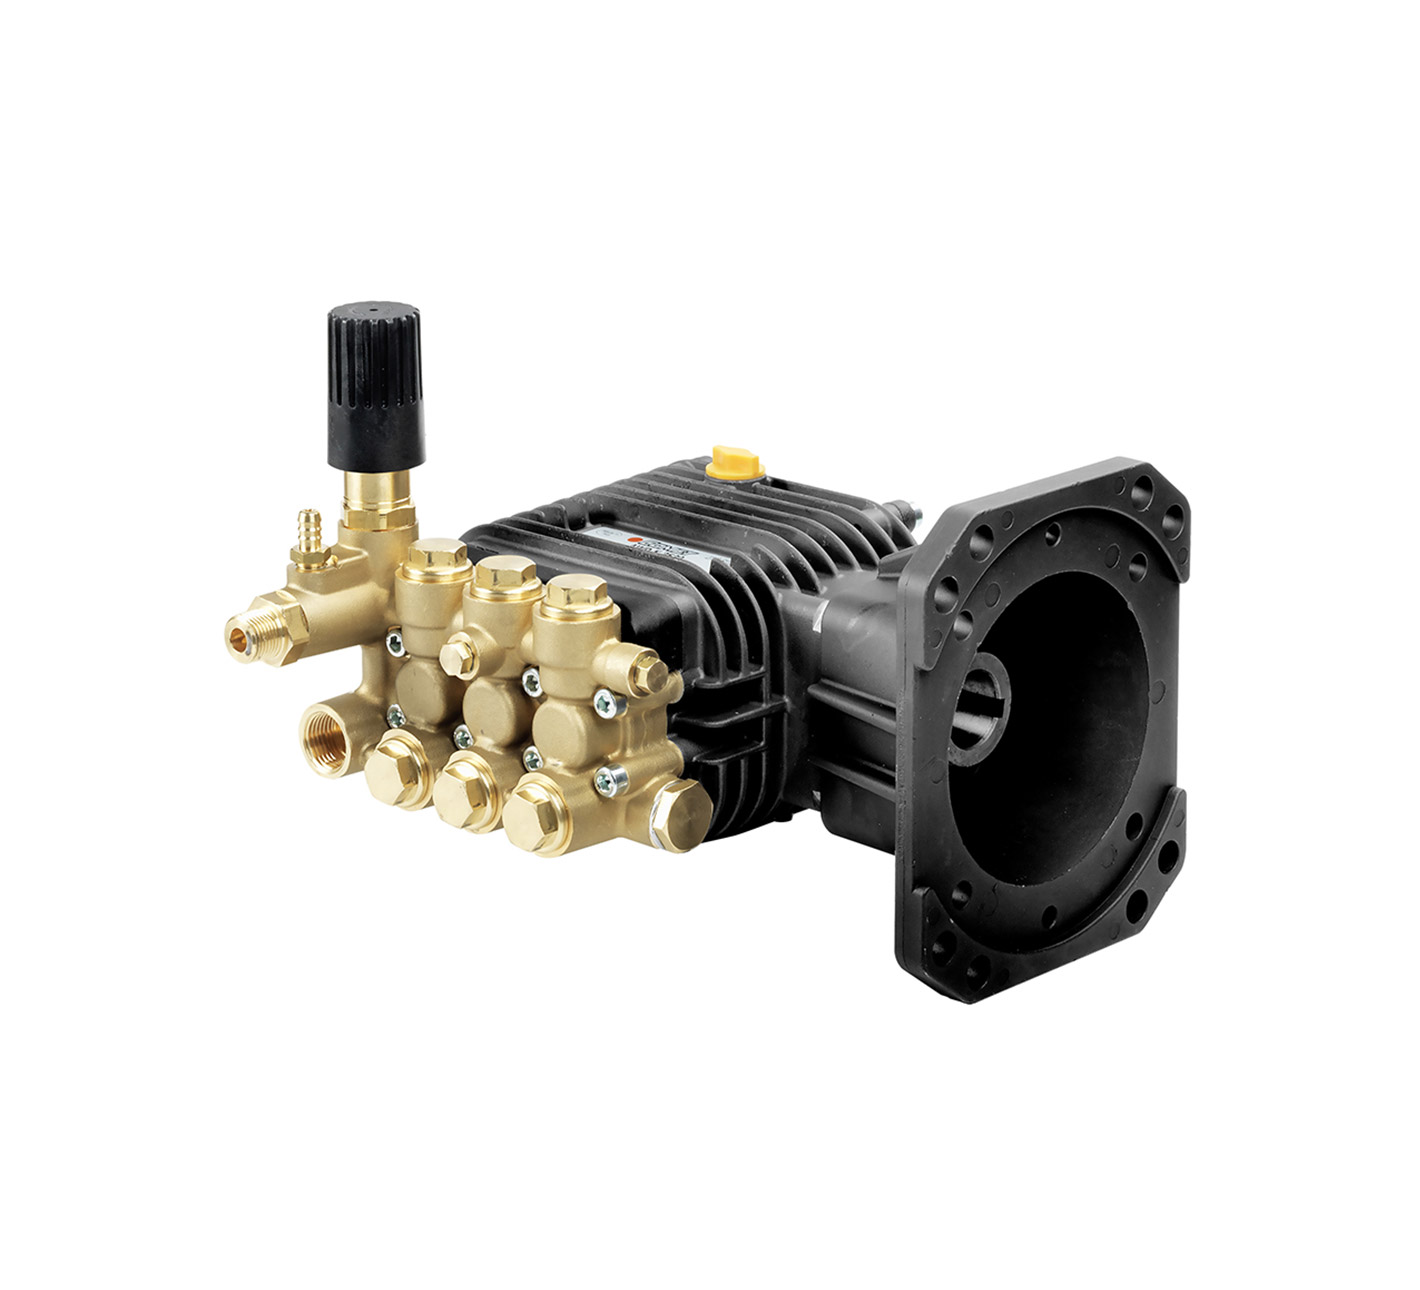 awd k Comet Industrial Pumps